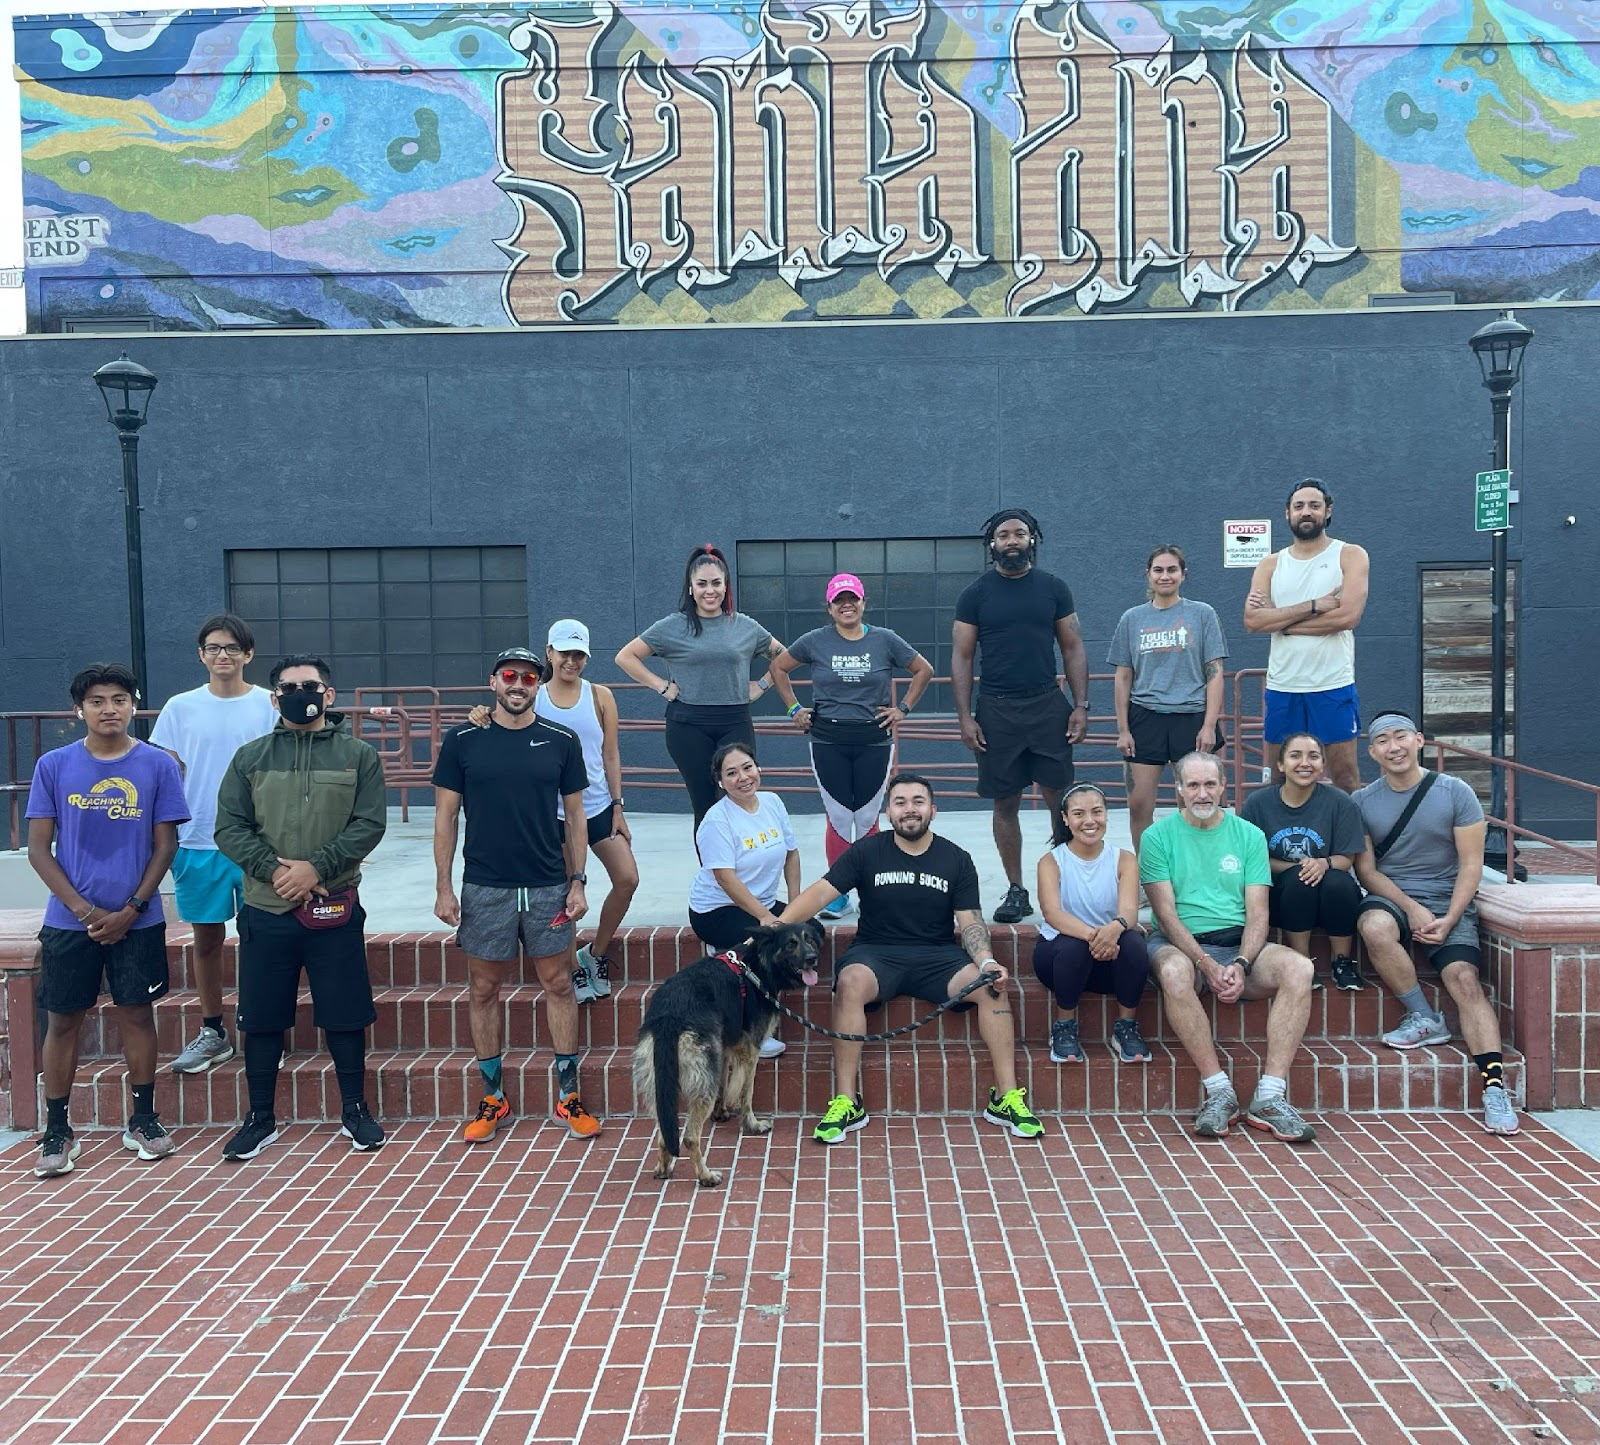 A group of runners pose after a 3-mile run in front of a mural that reads, Santa Ana. There is a dog in the front row, he looks like a German Shepherd.